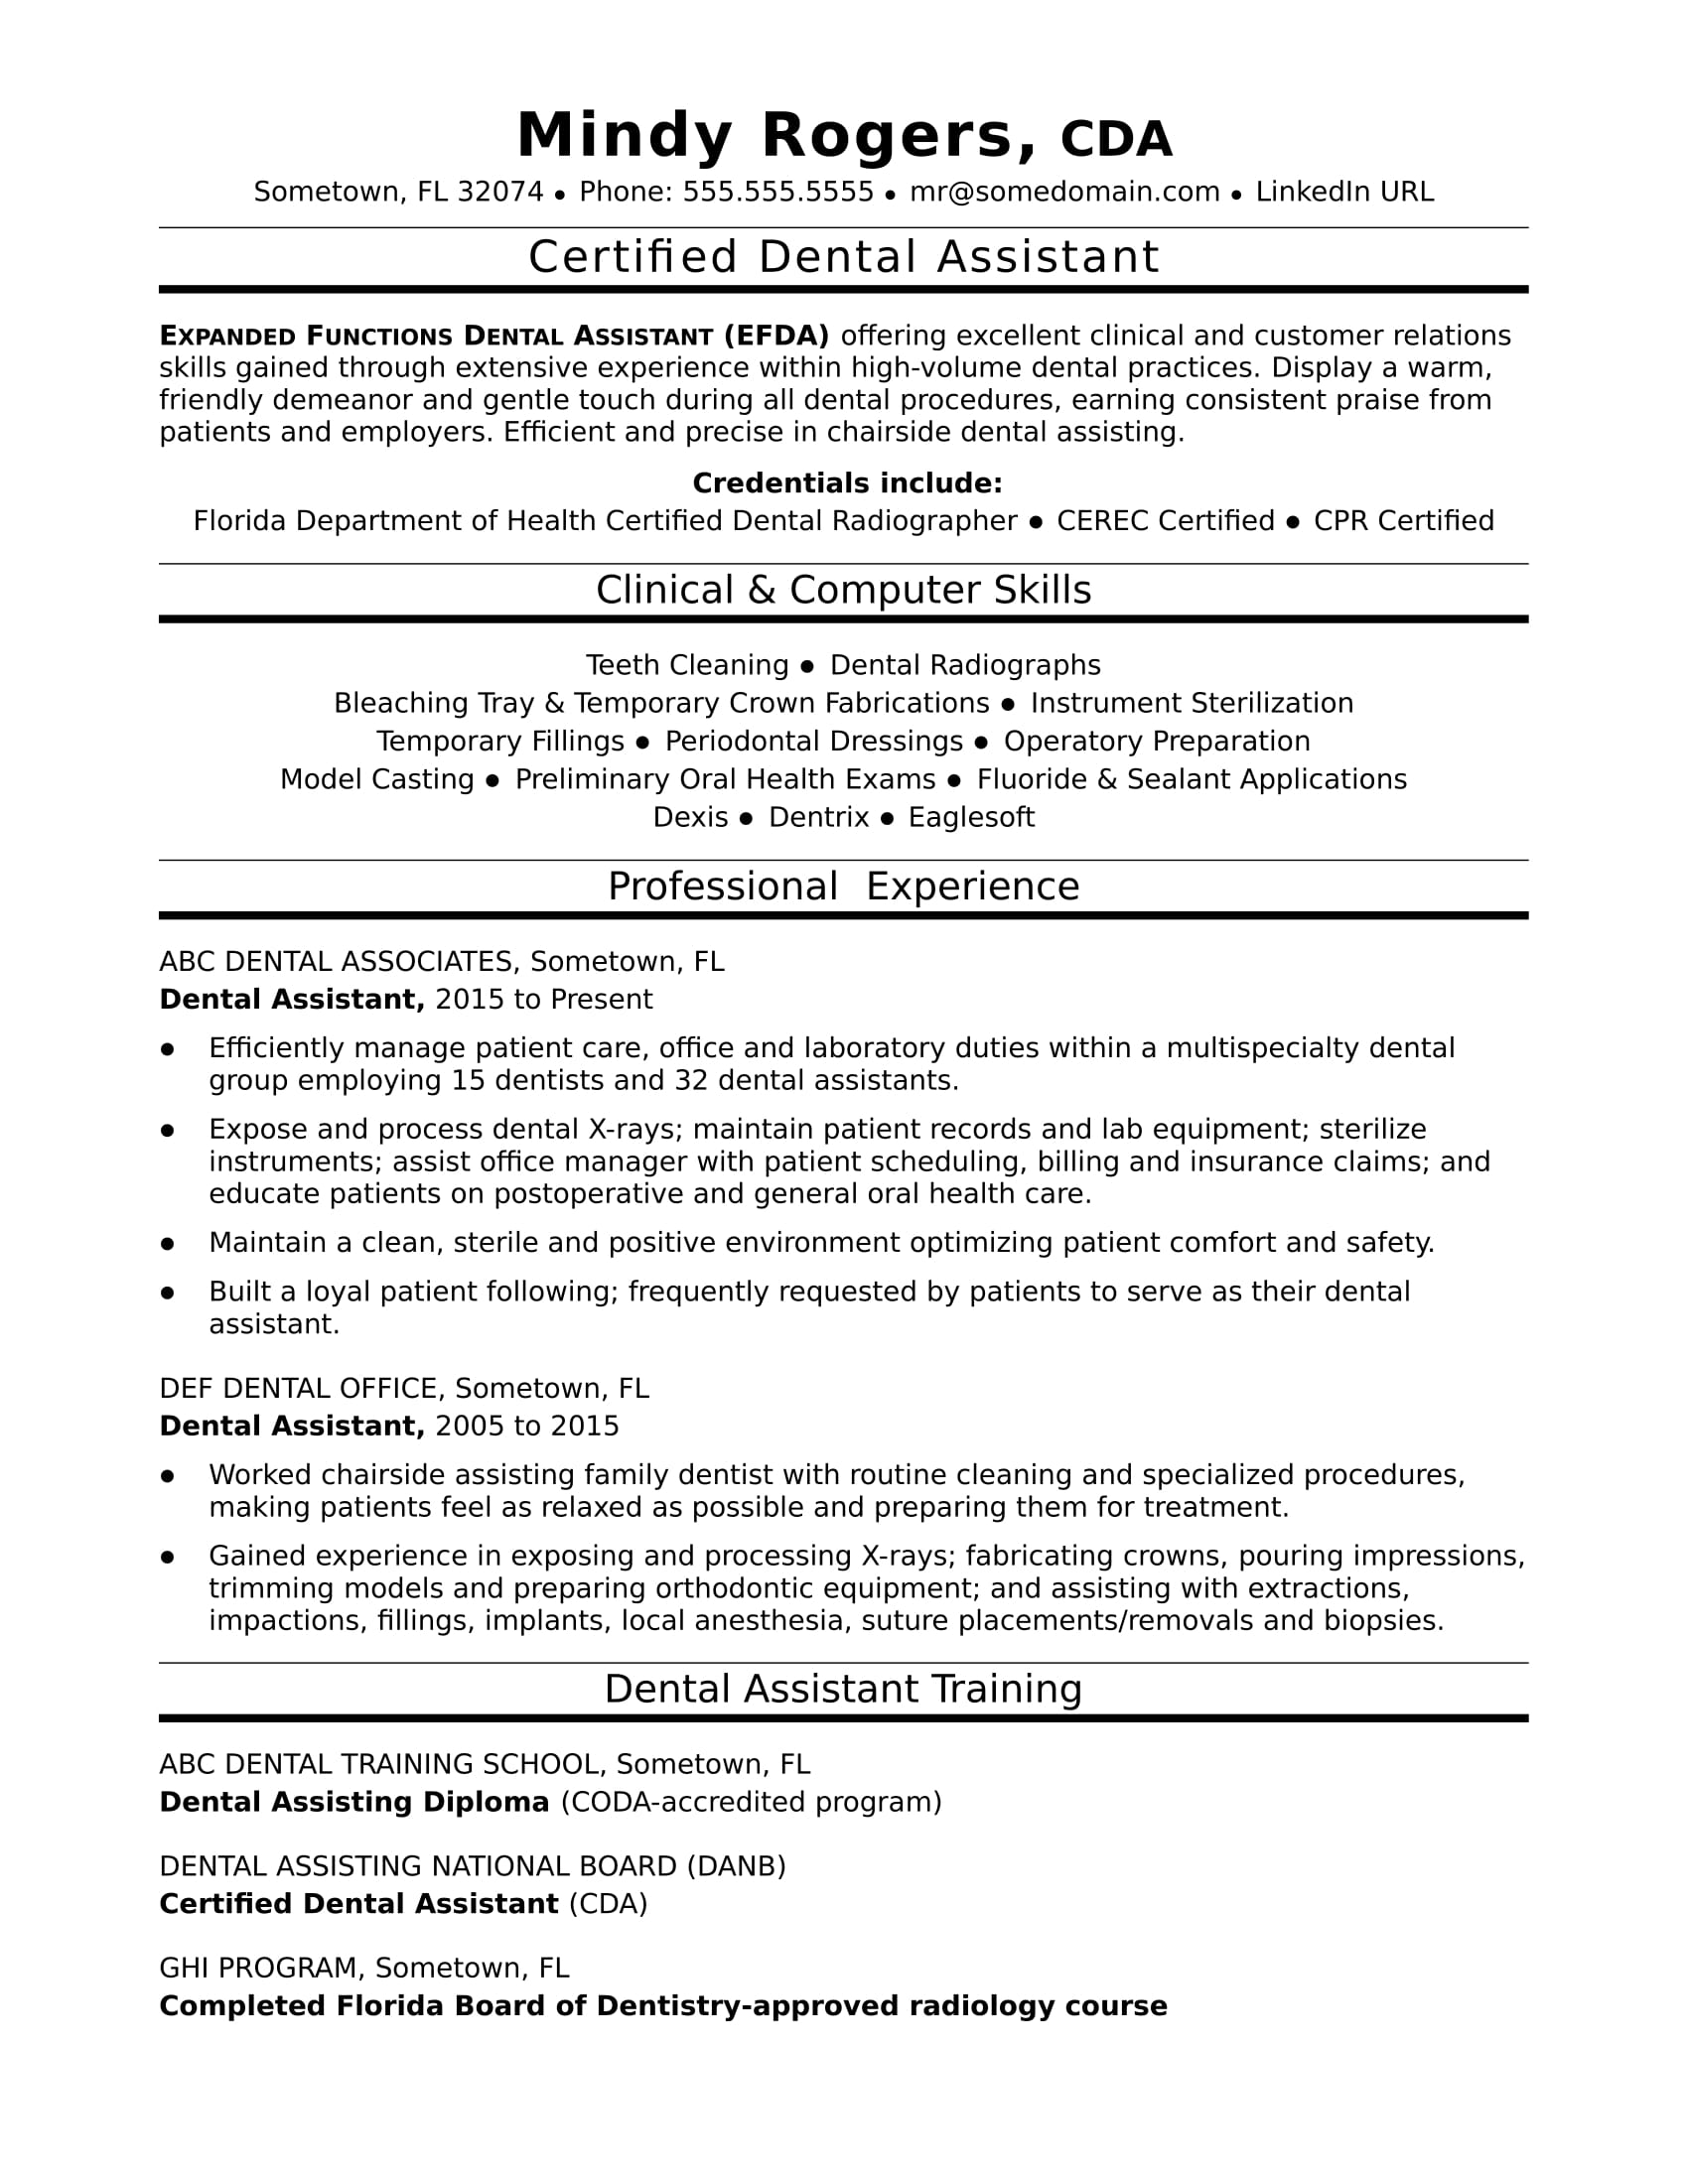 dental assistant resume sample - Resumes For Dental Assistants